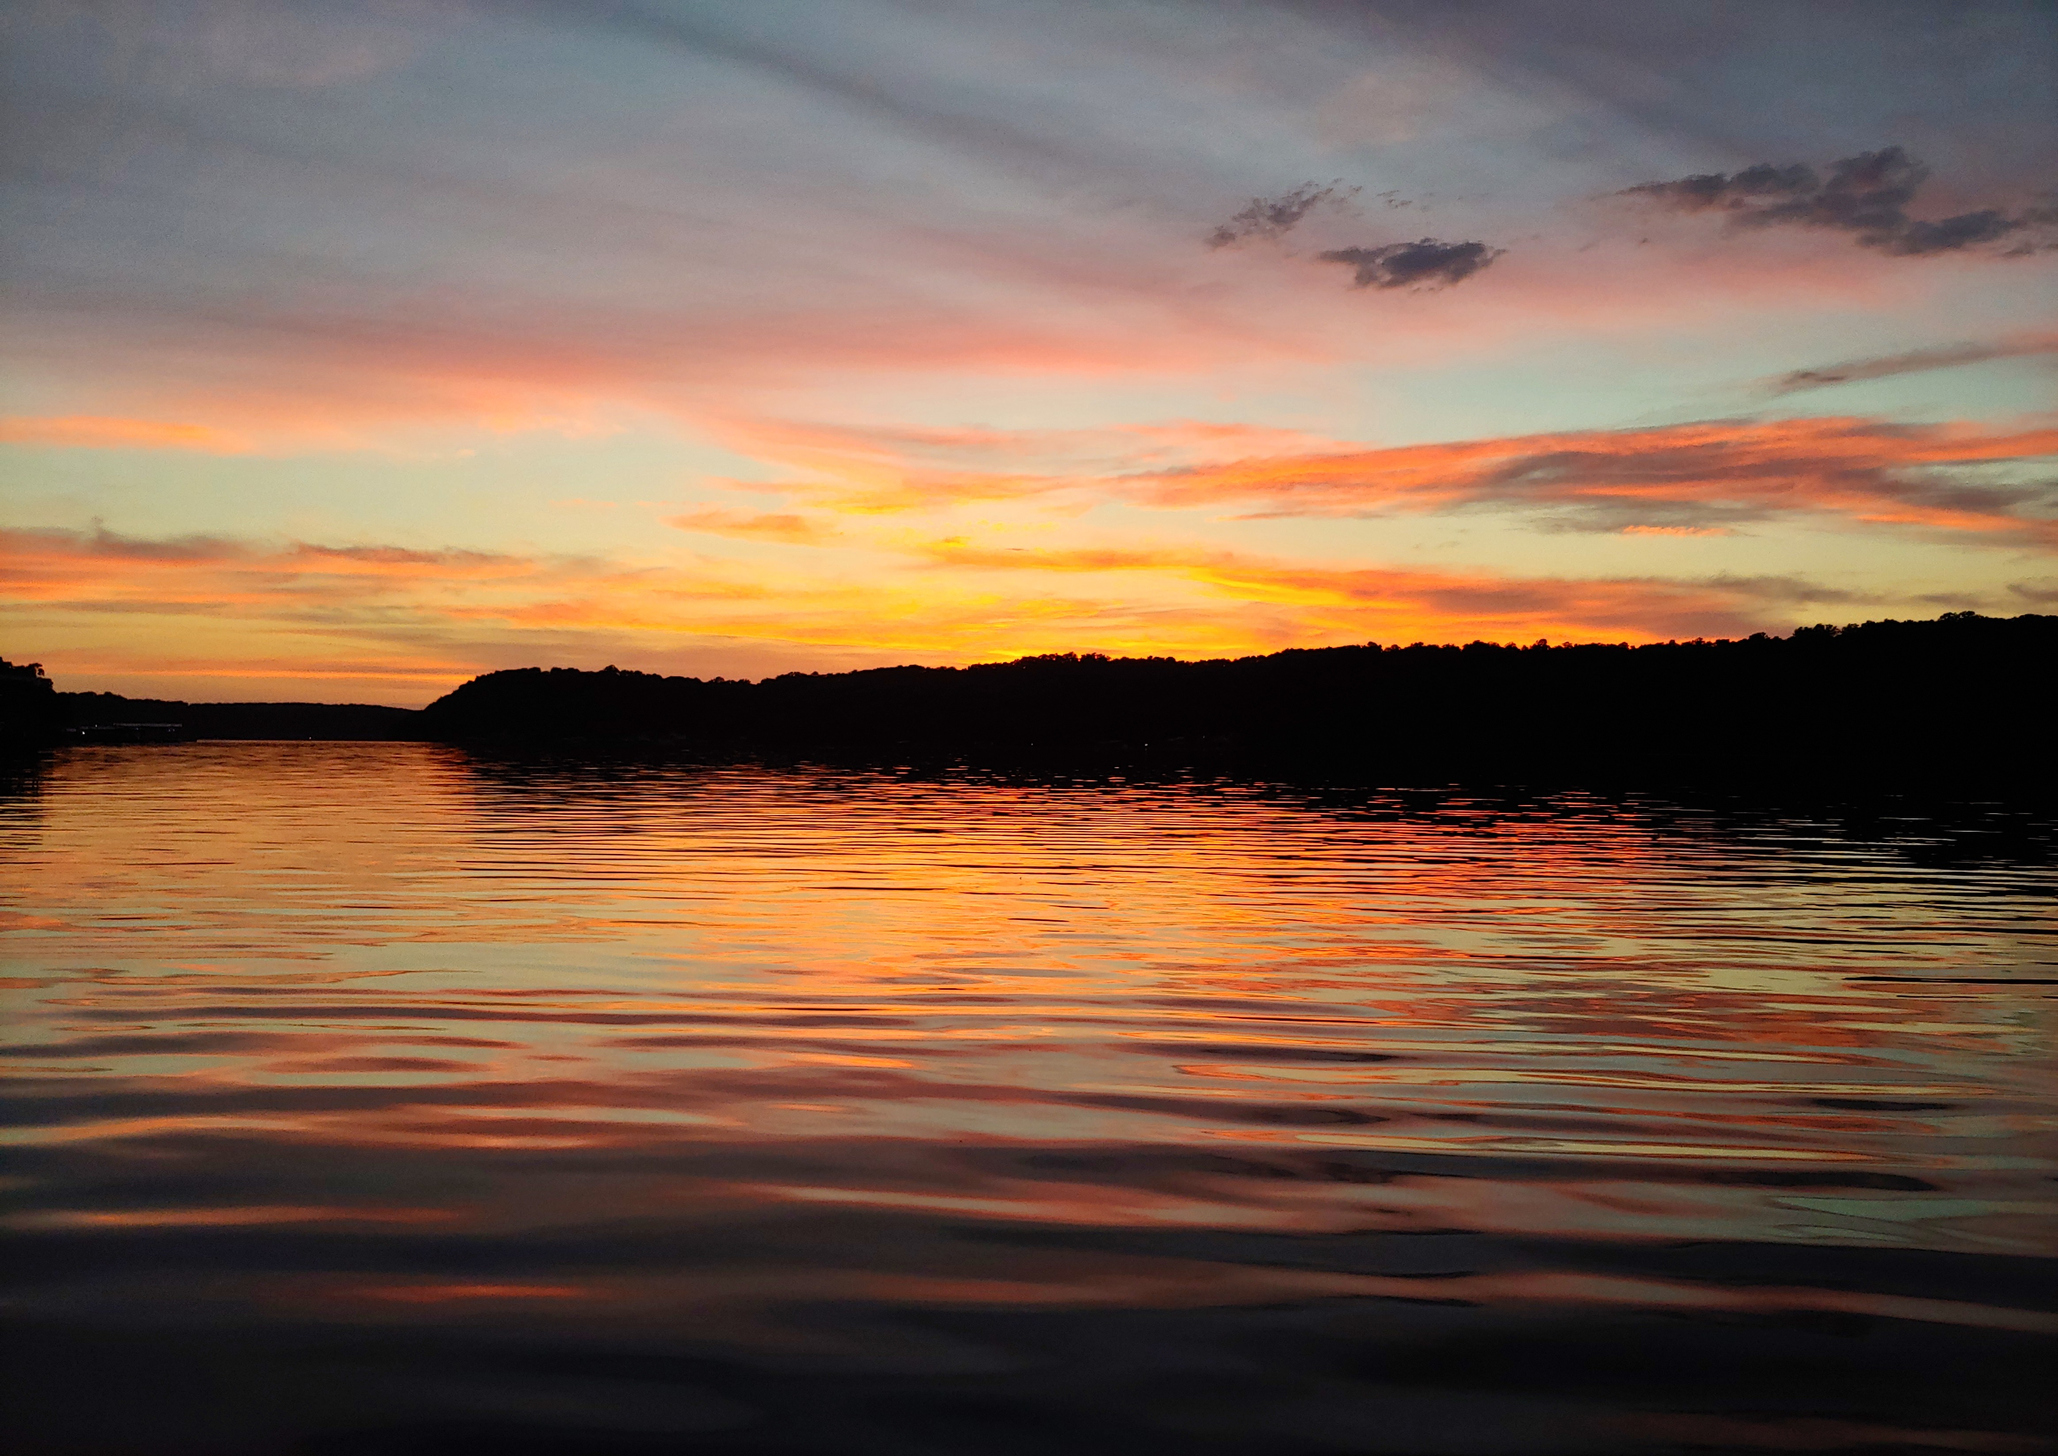 Vibrant sunset on the 69mm, Lake of the Ozarks, Missouri.